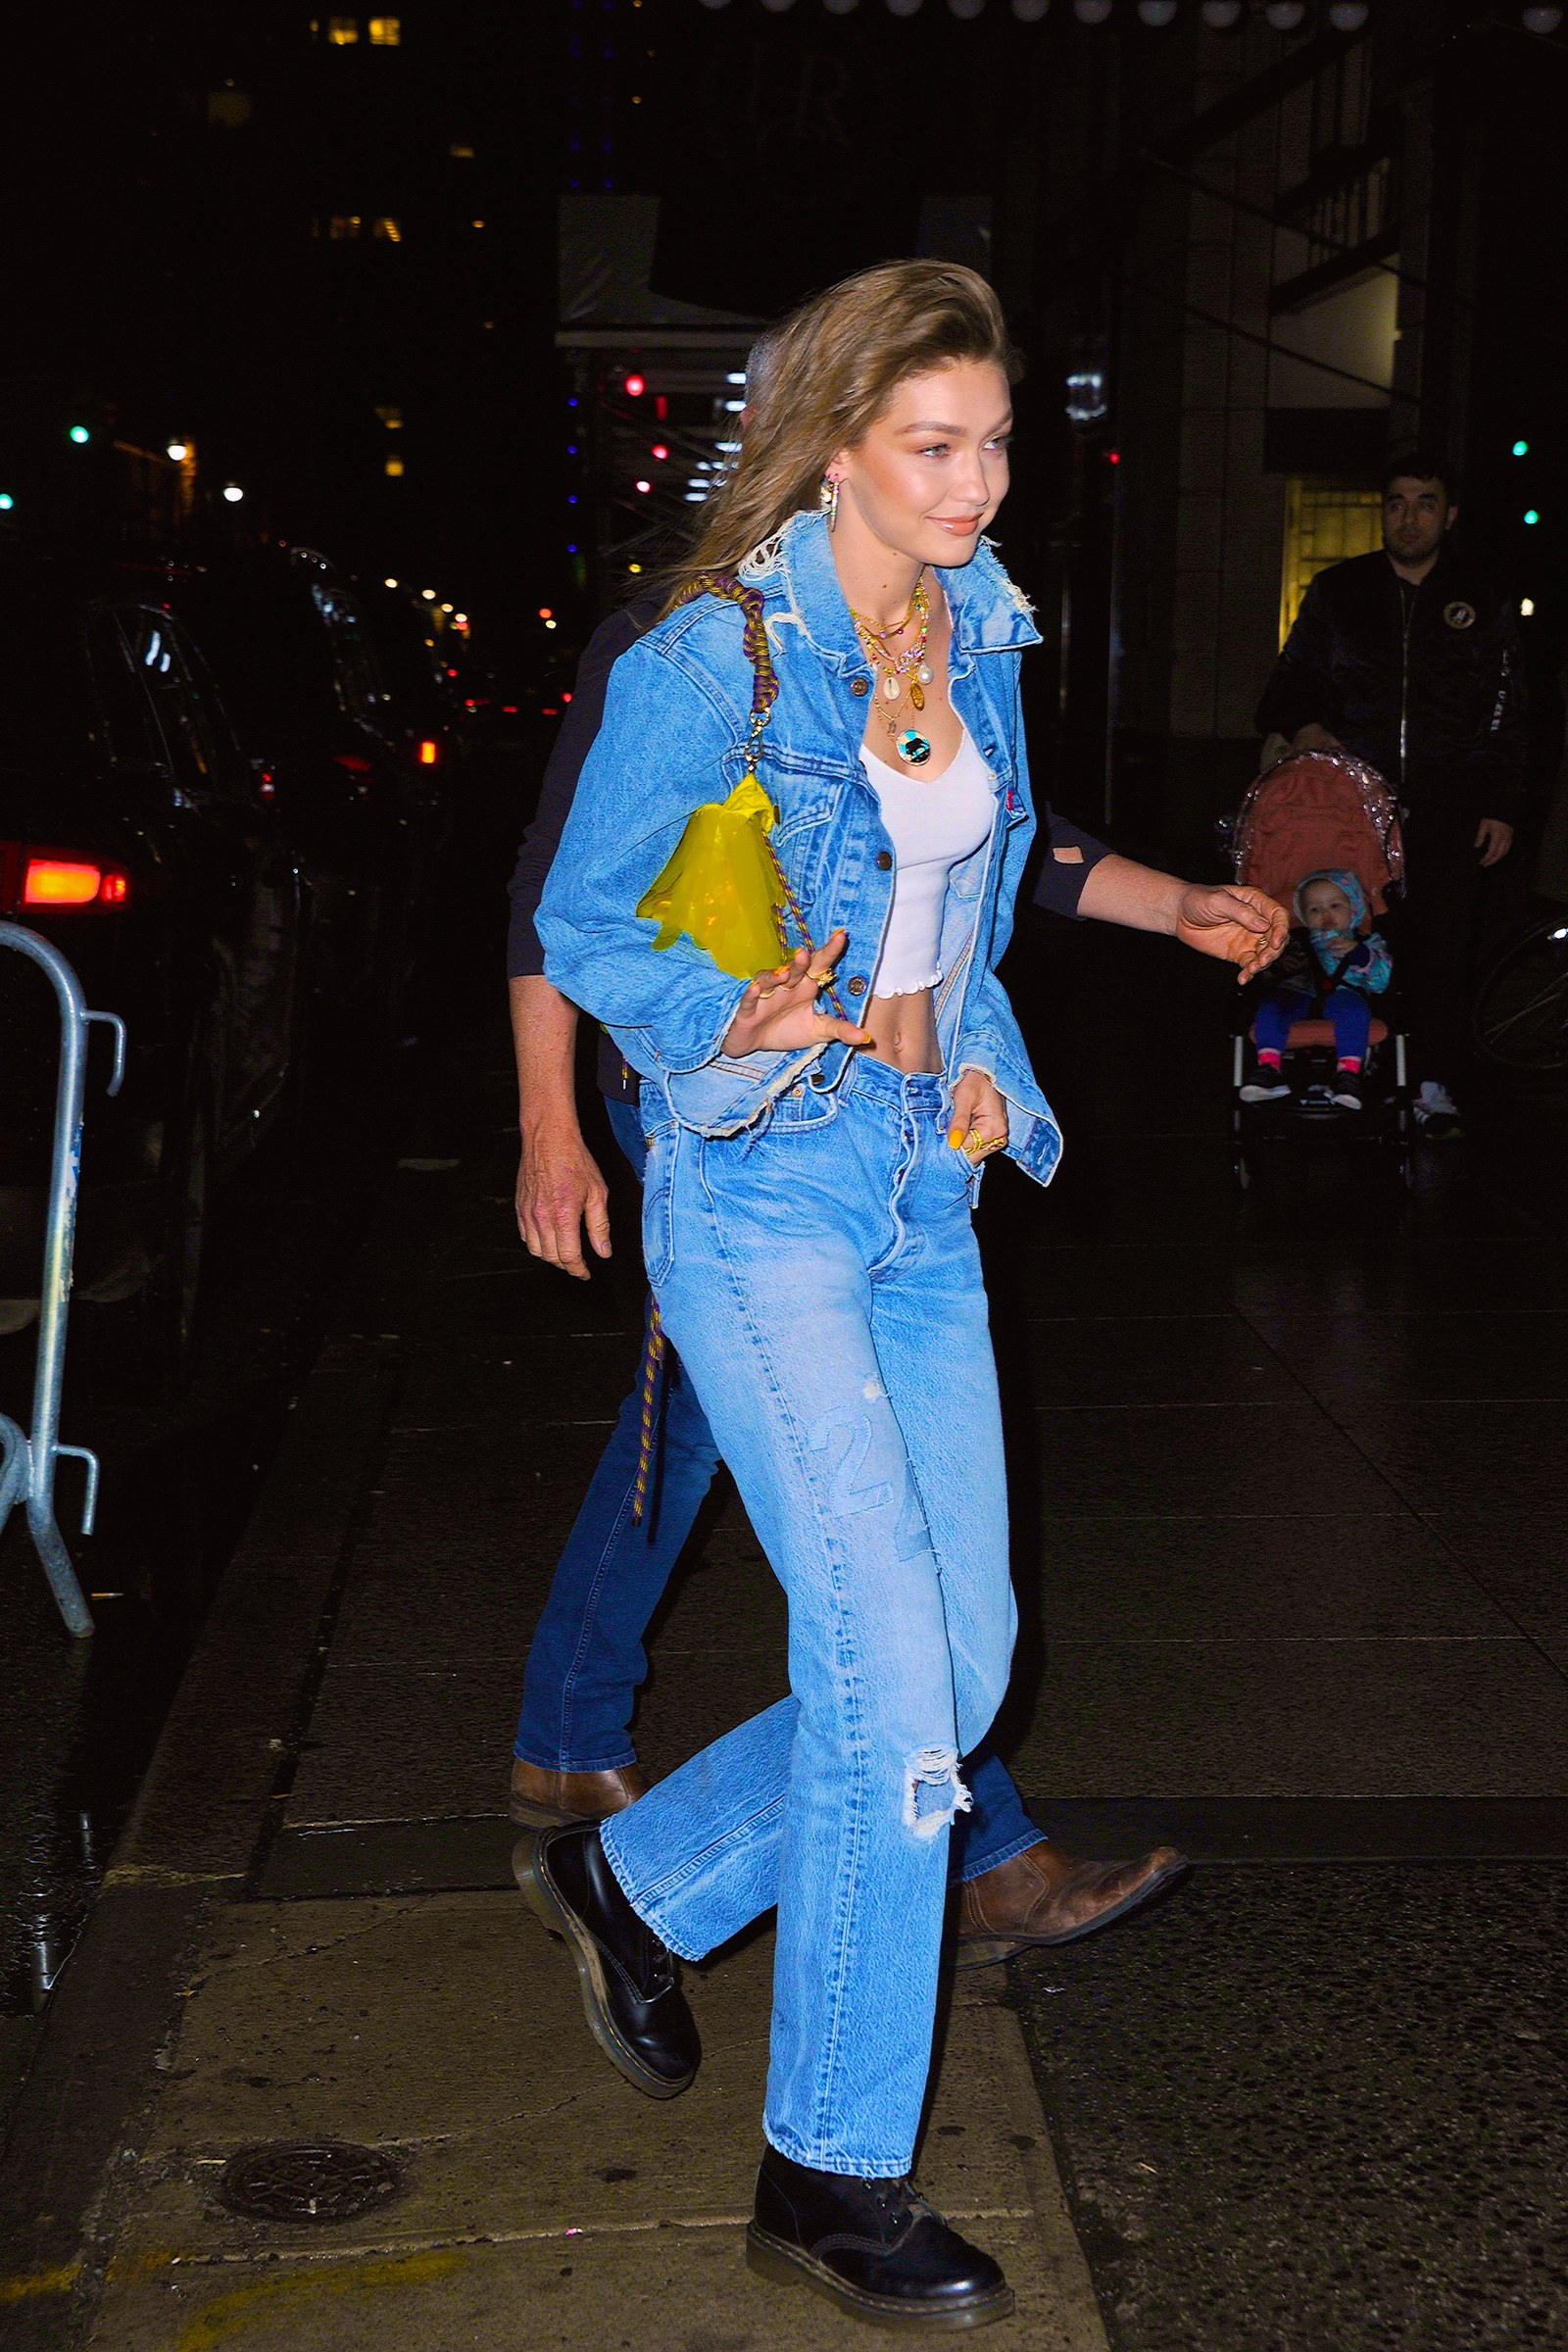 Gigi Hadid arriving at her birthday party